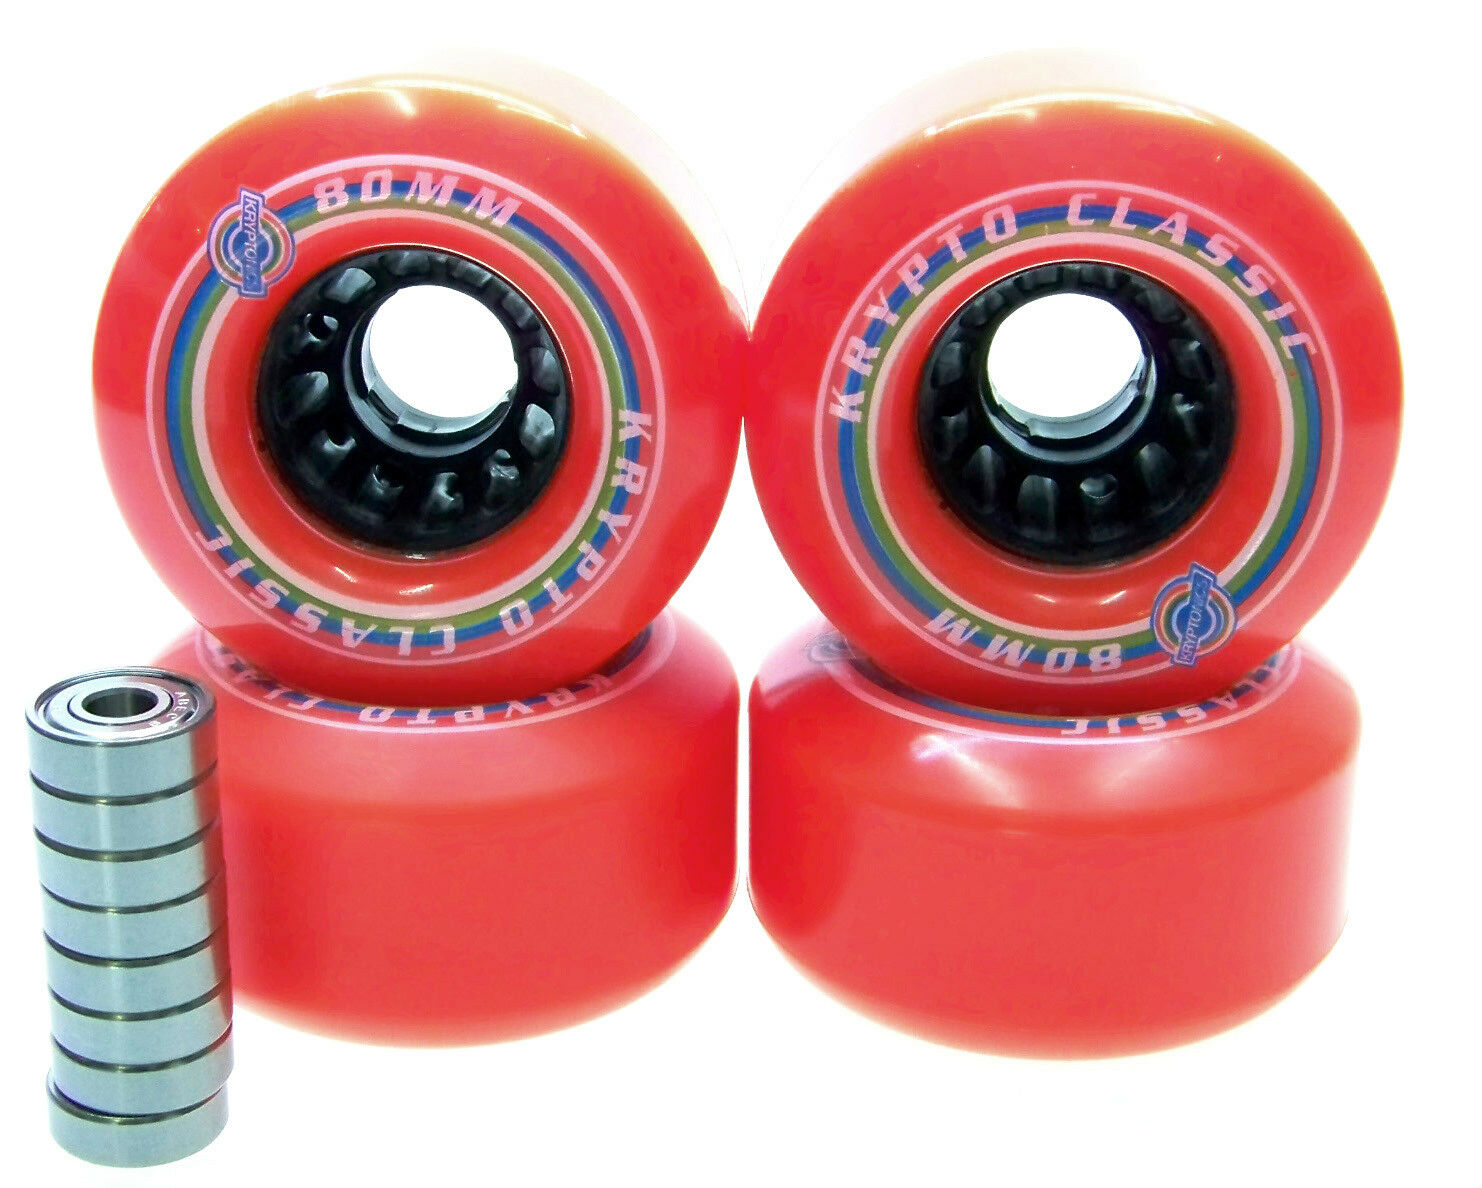 Kryptonics Classic 80mm   80A Longboard wheels bearing ABEC 5 7 9 RED